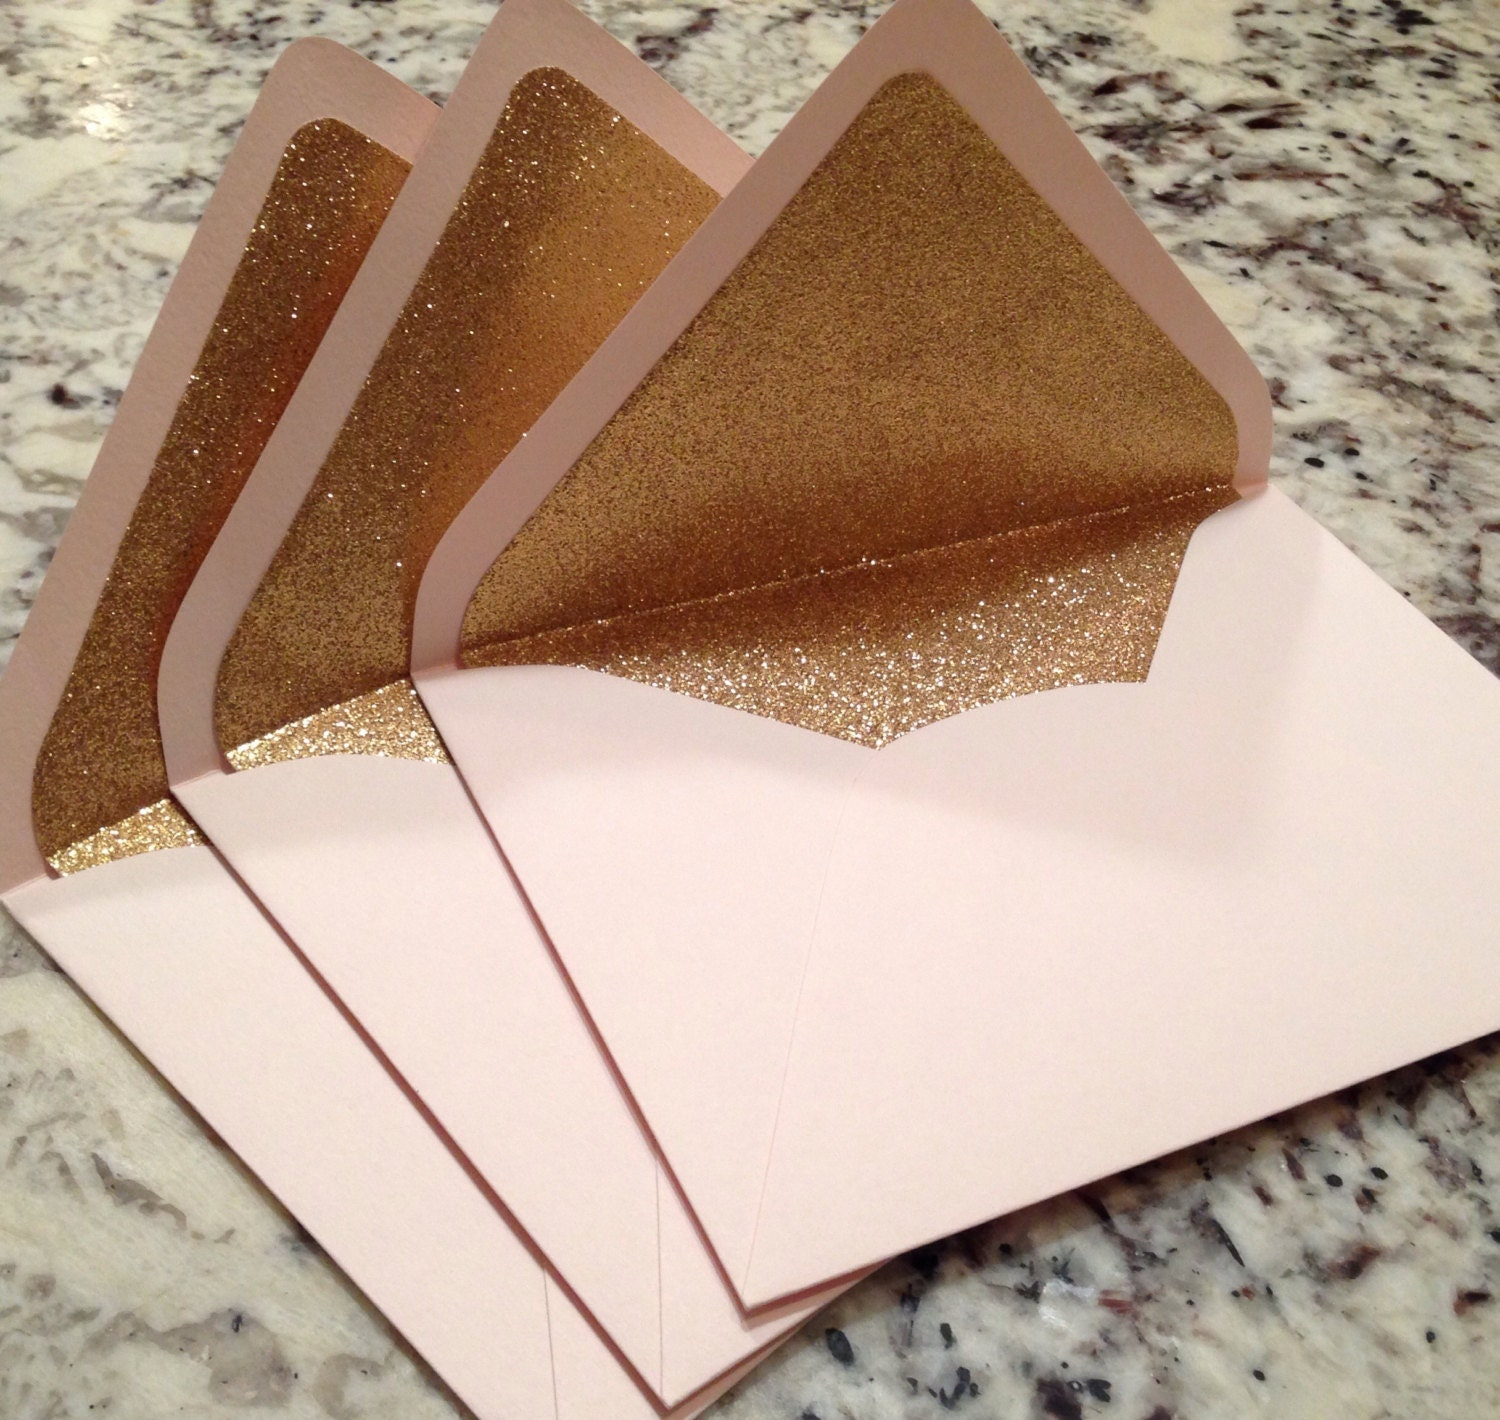 luxe blush a7 5x7 gold glitter lined envelopes pale pink. Black Bedroom Furniture Sets. Home Design Ideas